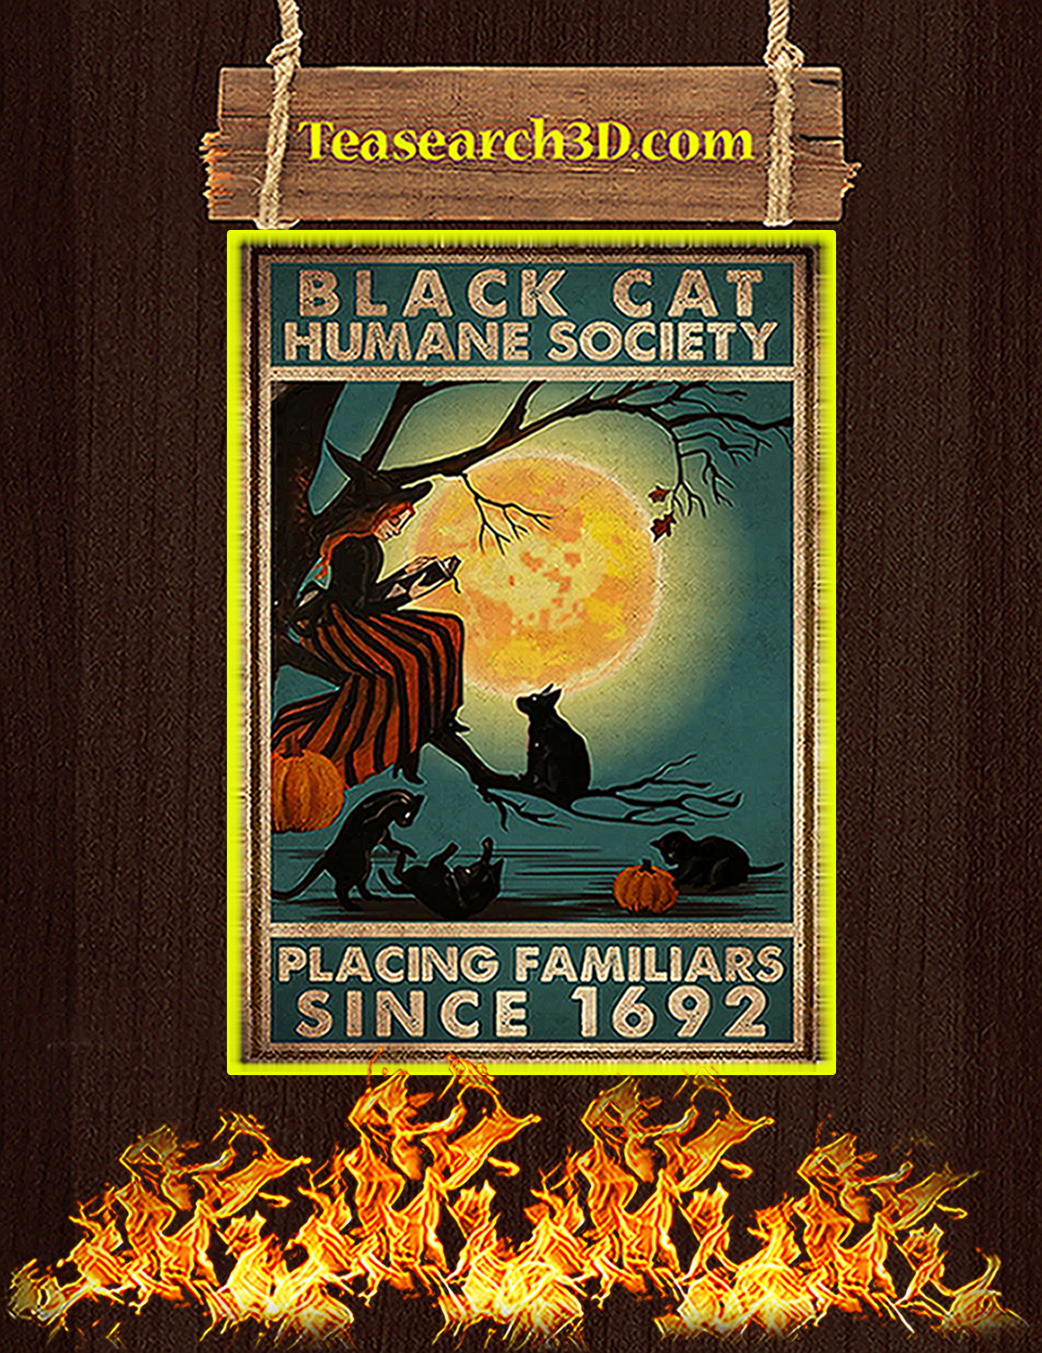 Black cat humane society placing familiars since 1962 poster A1